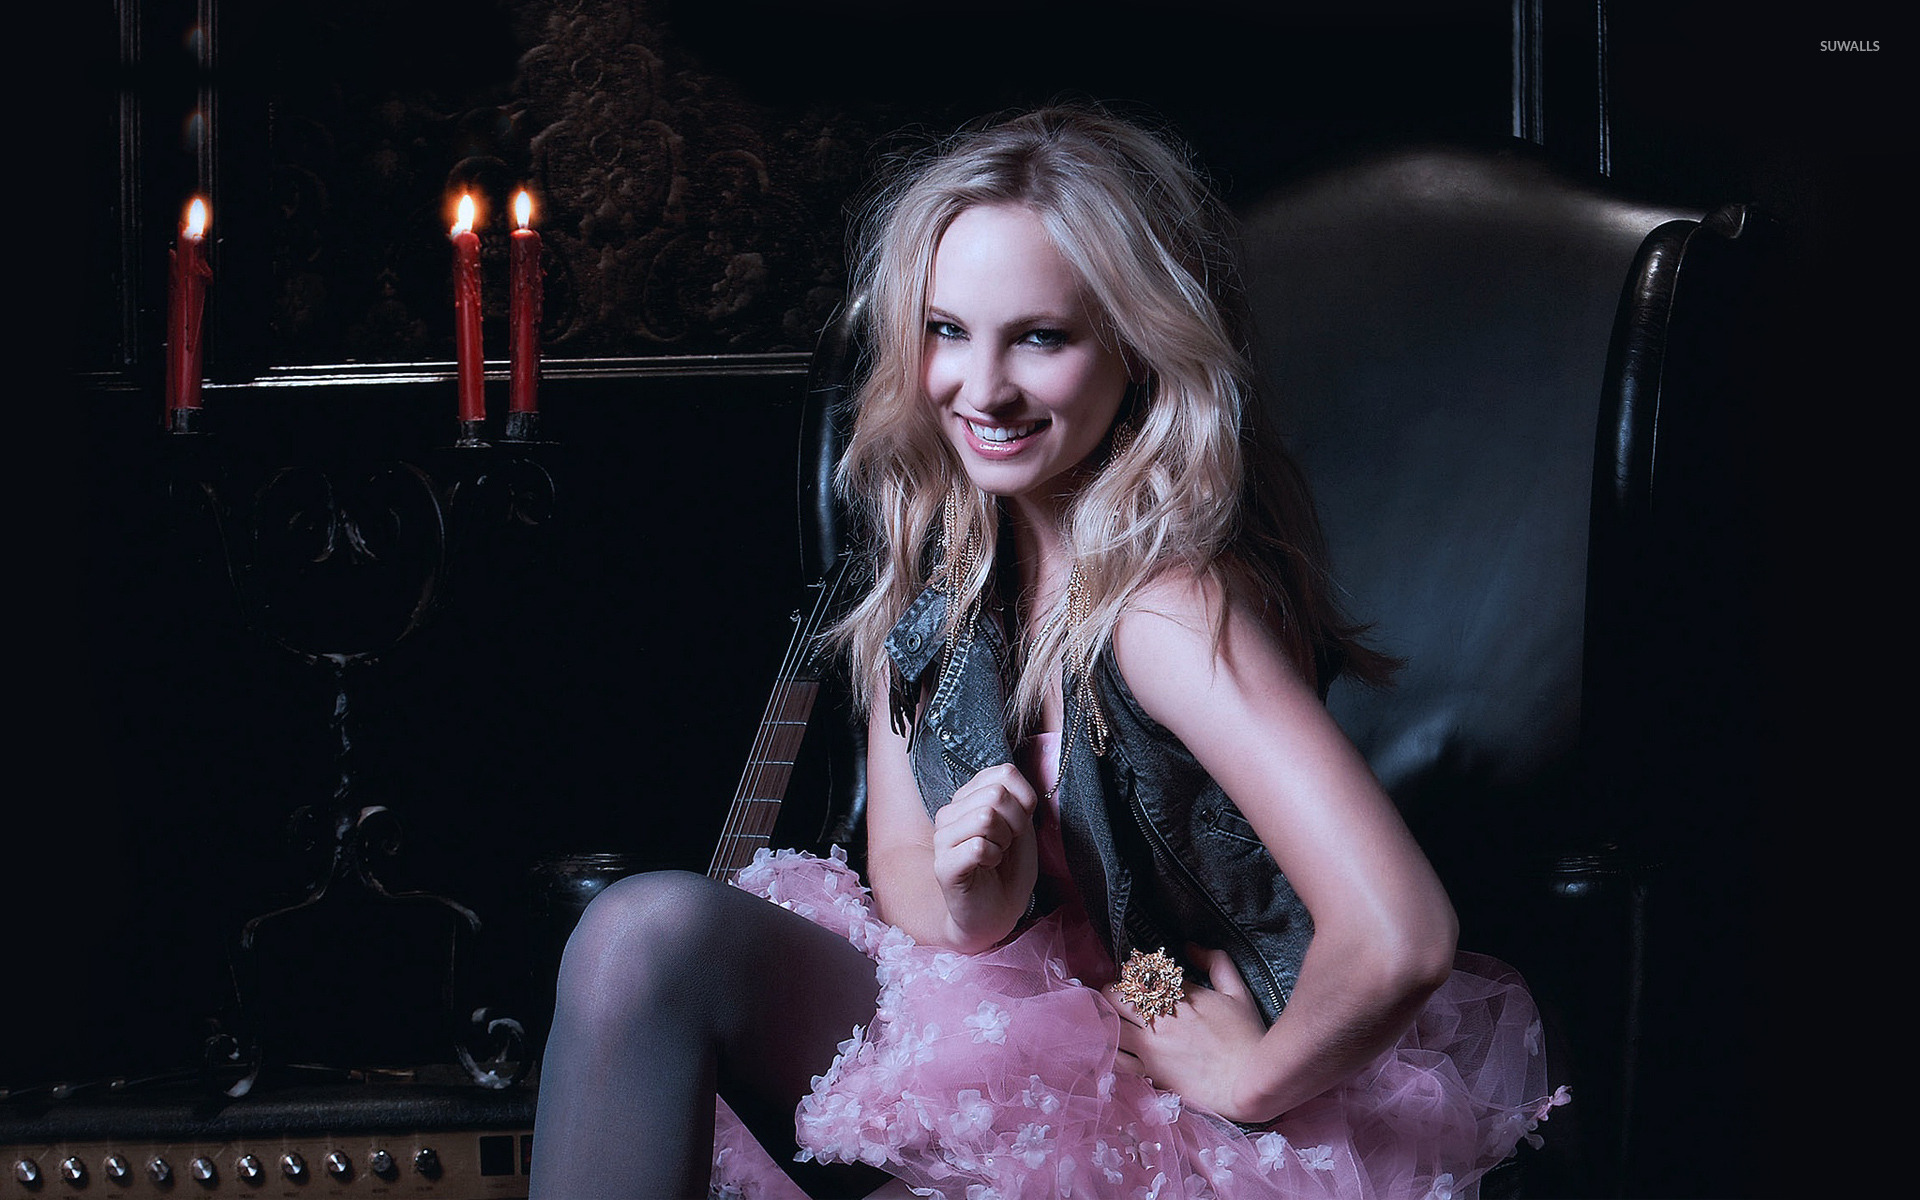 1920x1200 - Candice Accola Wallpapers 21